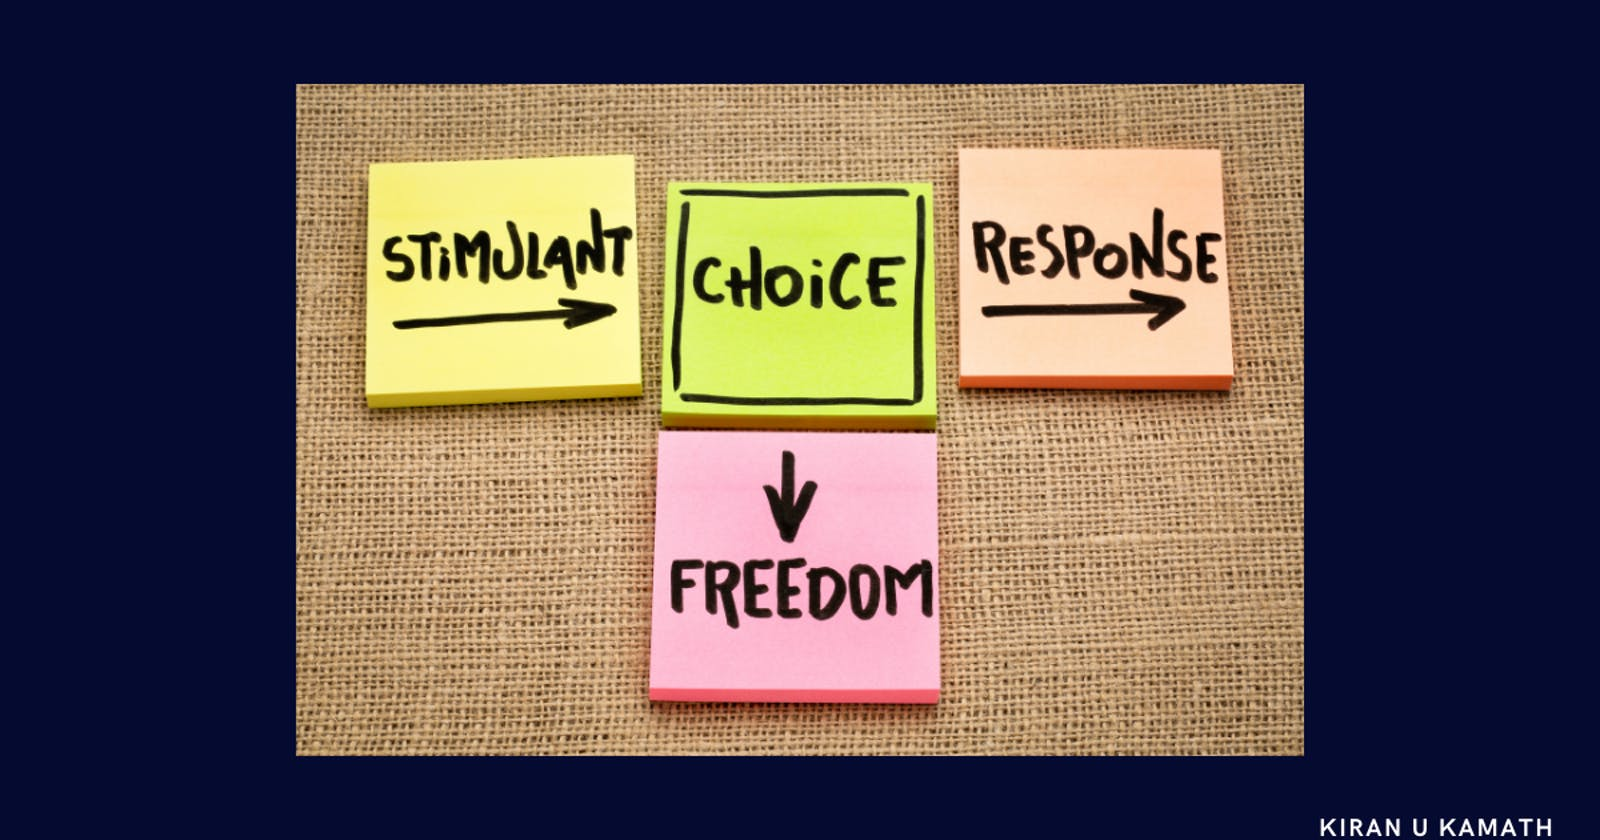 Between Stimulus and response - We have freedom of Choice